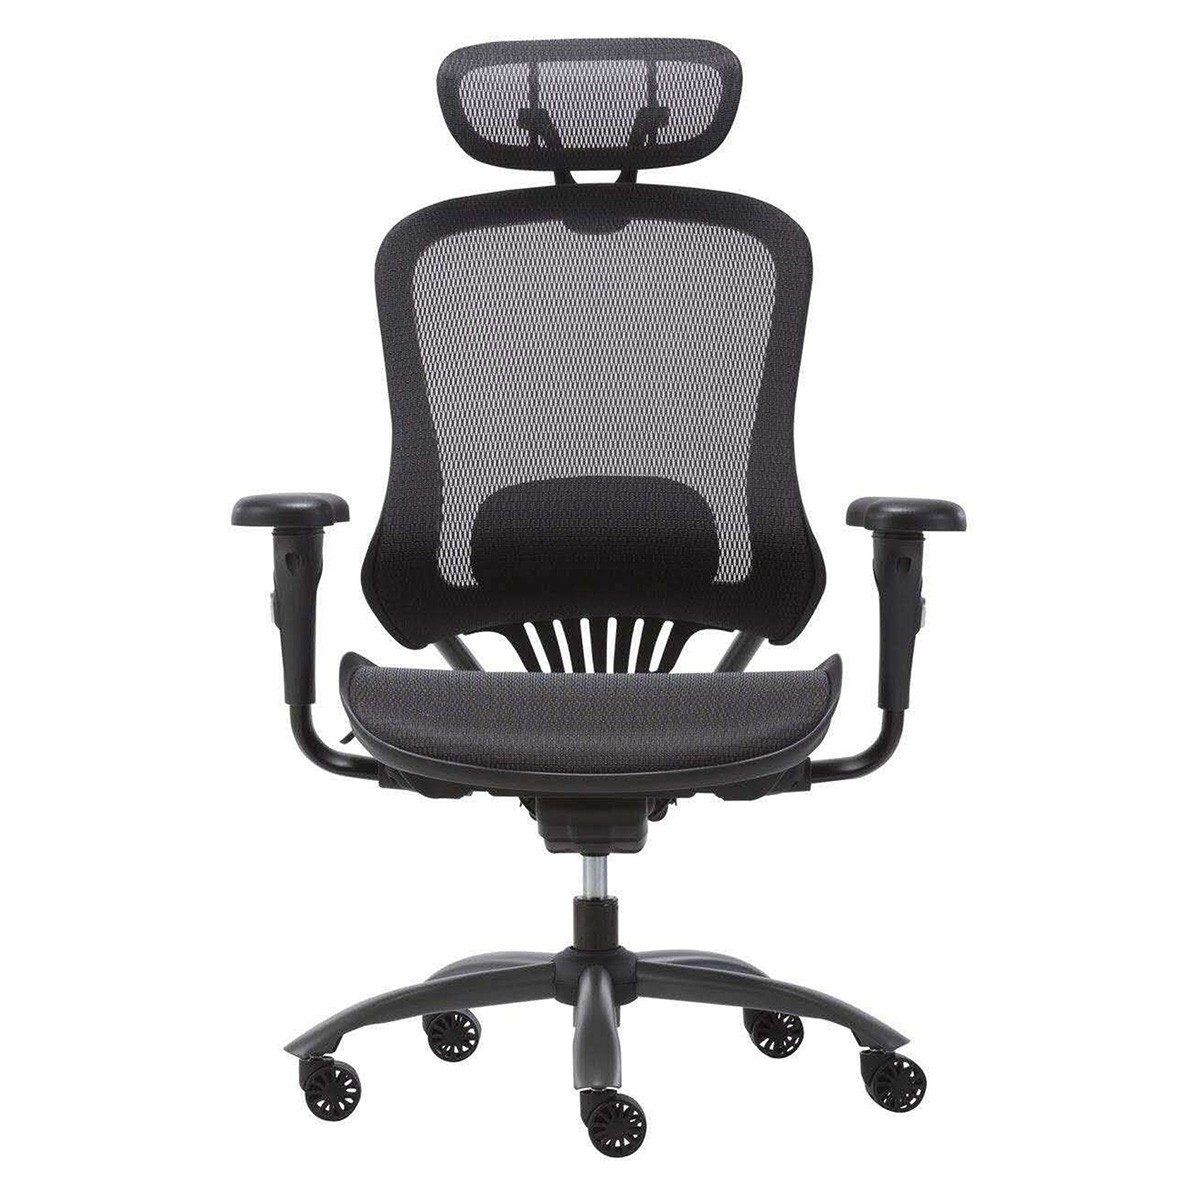 Cortez Commercial Grade Mesh Fabric Ergonomic High Back Office Chair